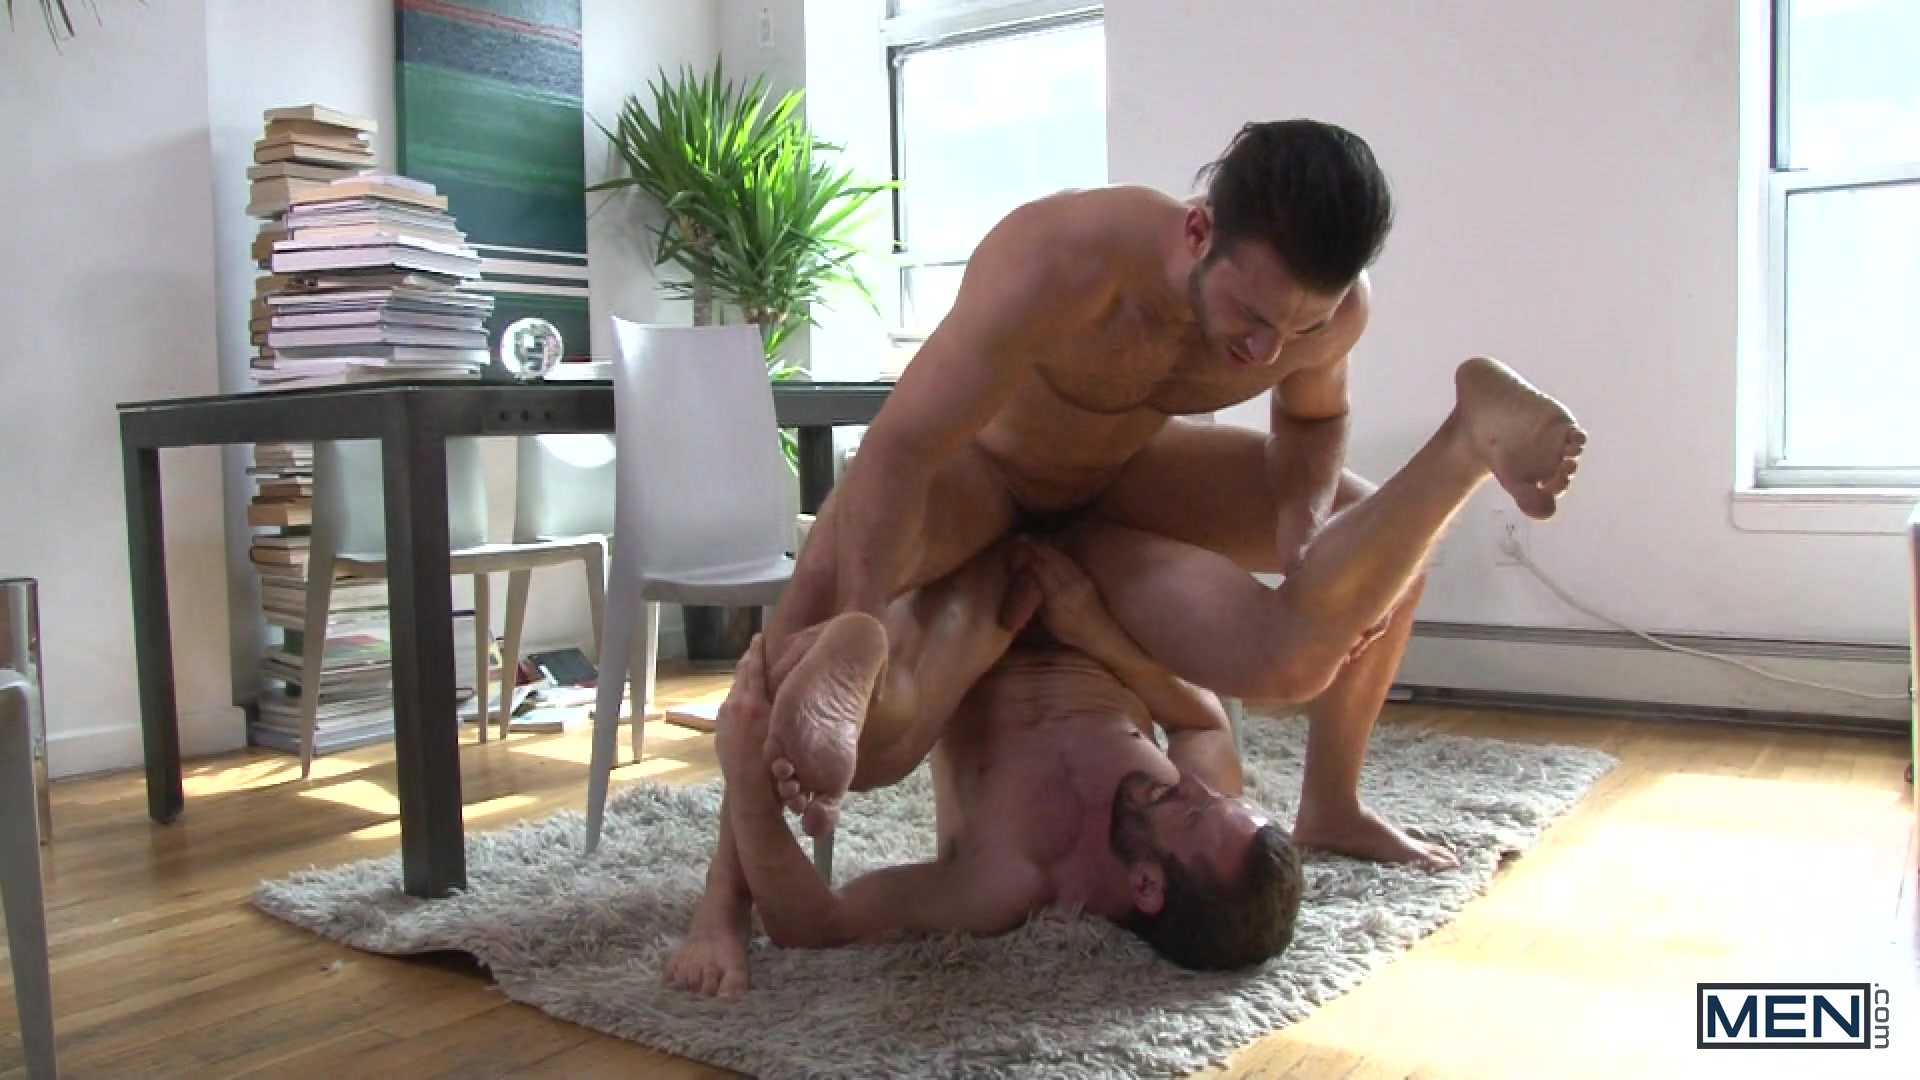 Watch Unfaithful Part 3 – Jarec Wentworth And Mike Gaite – Dmh – Drill My Hole (MEN.COM) Gay Porn Tube Videos Gifs And Free XXX HD Sex Movies Photos Online